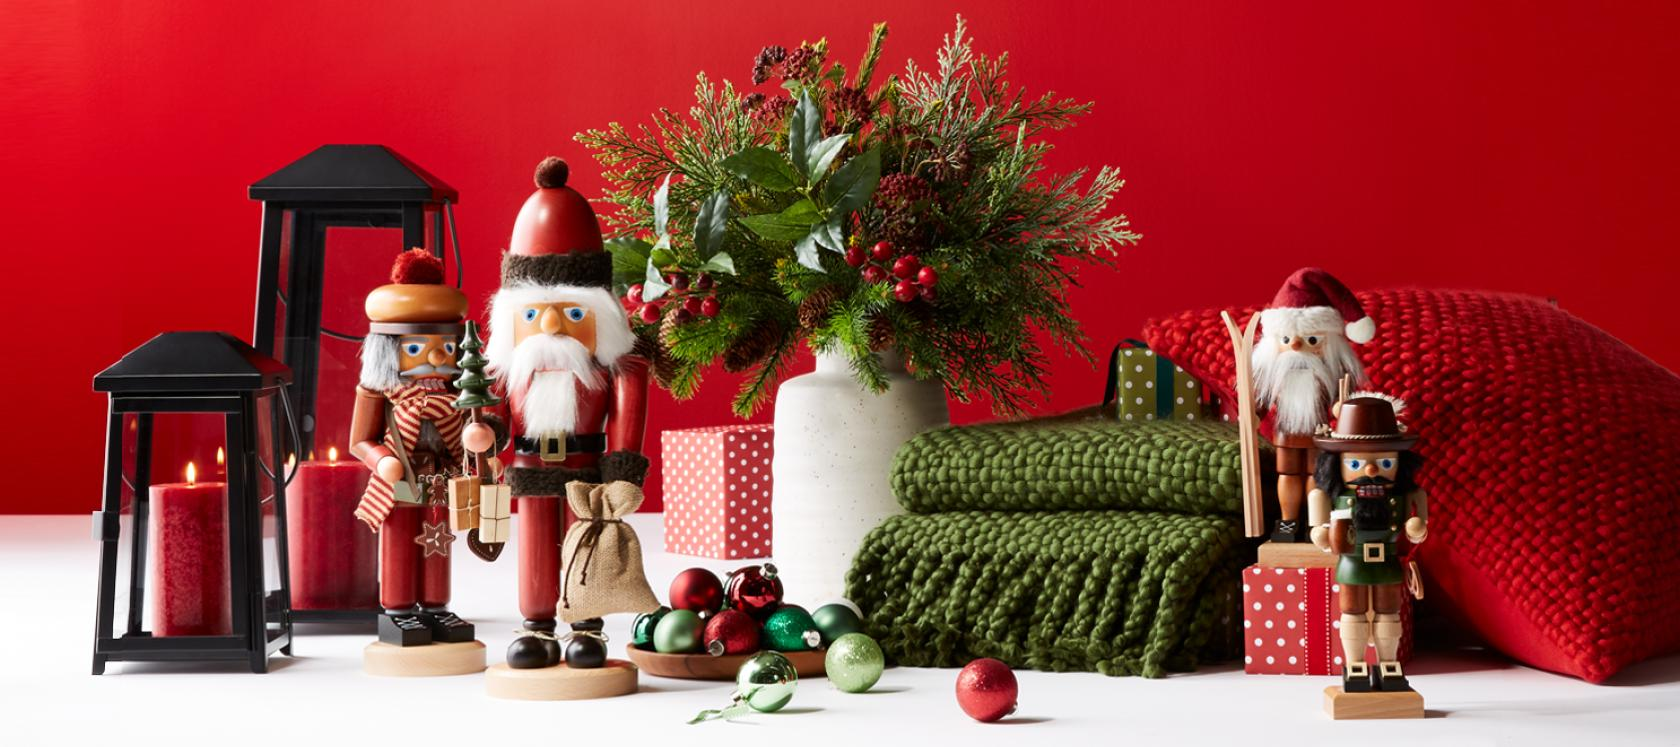 Christmas Decorations for Home and Tree | Crate and Barrel